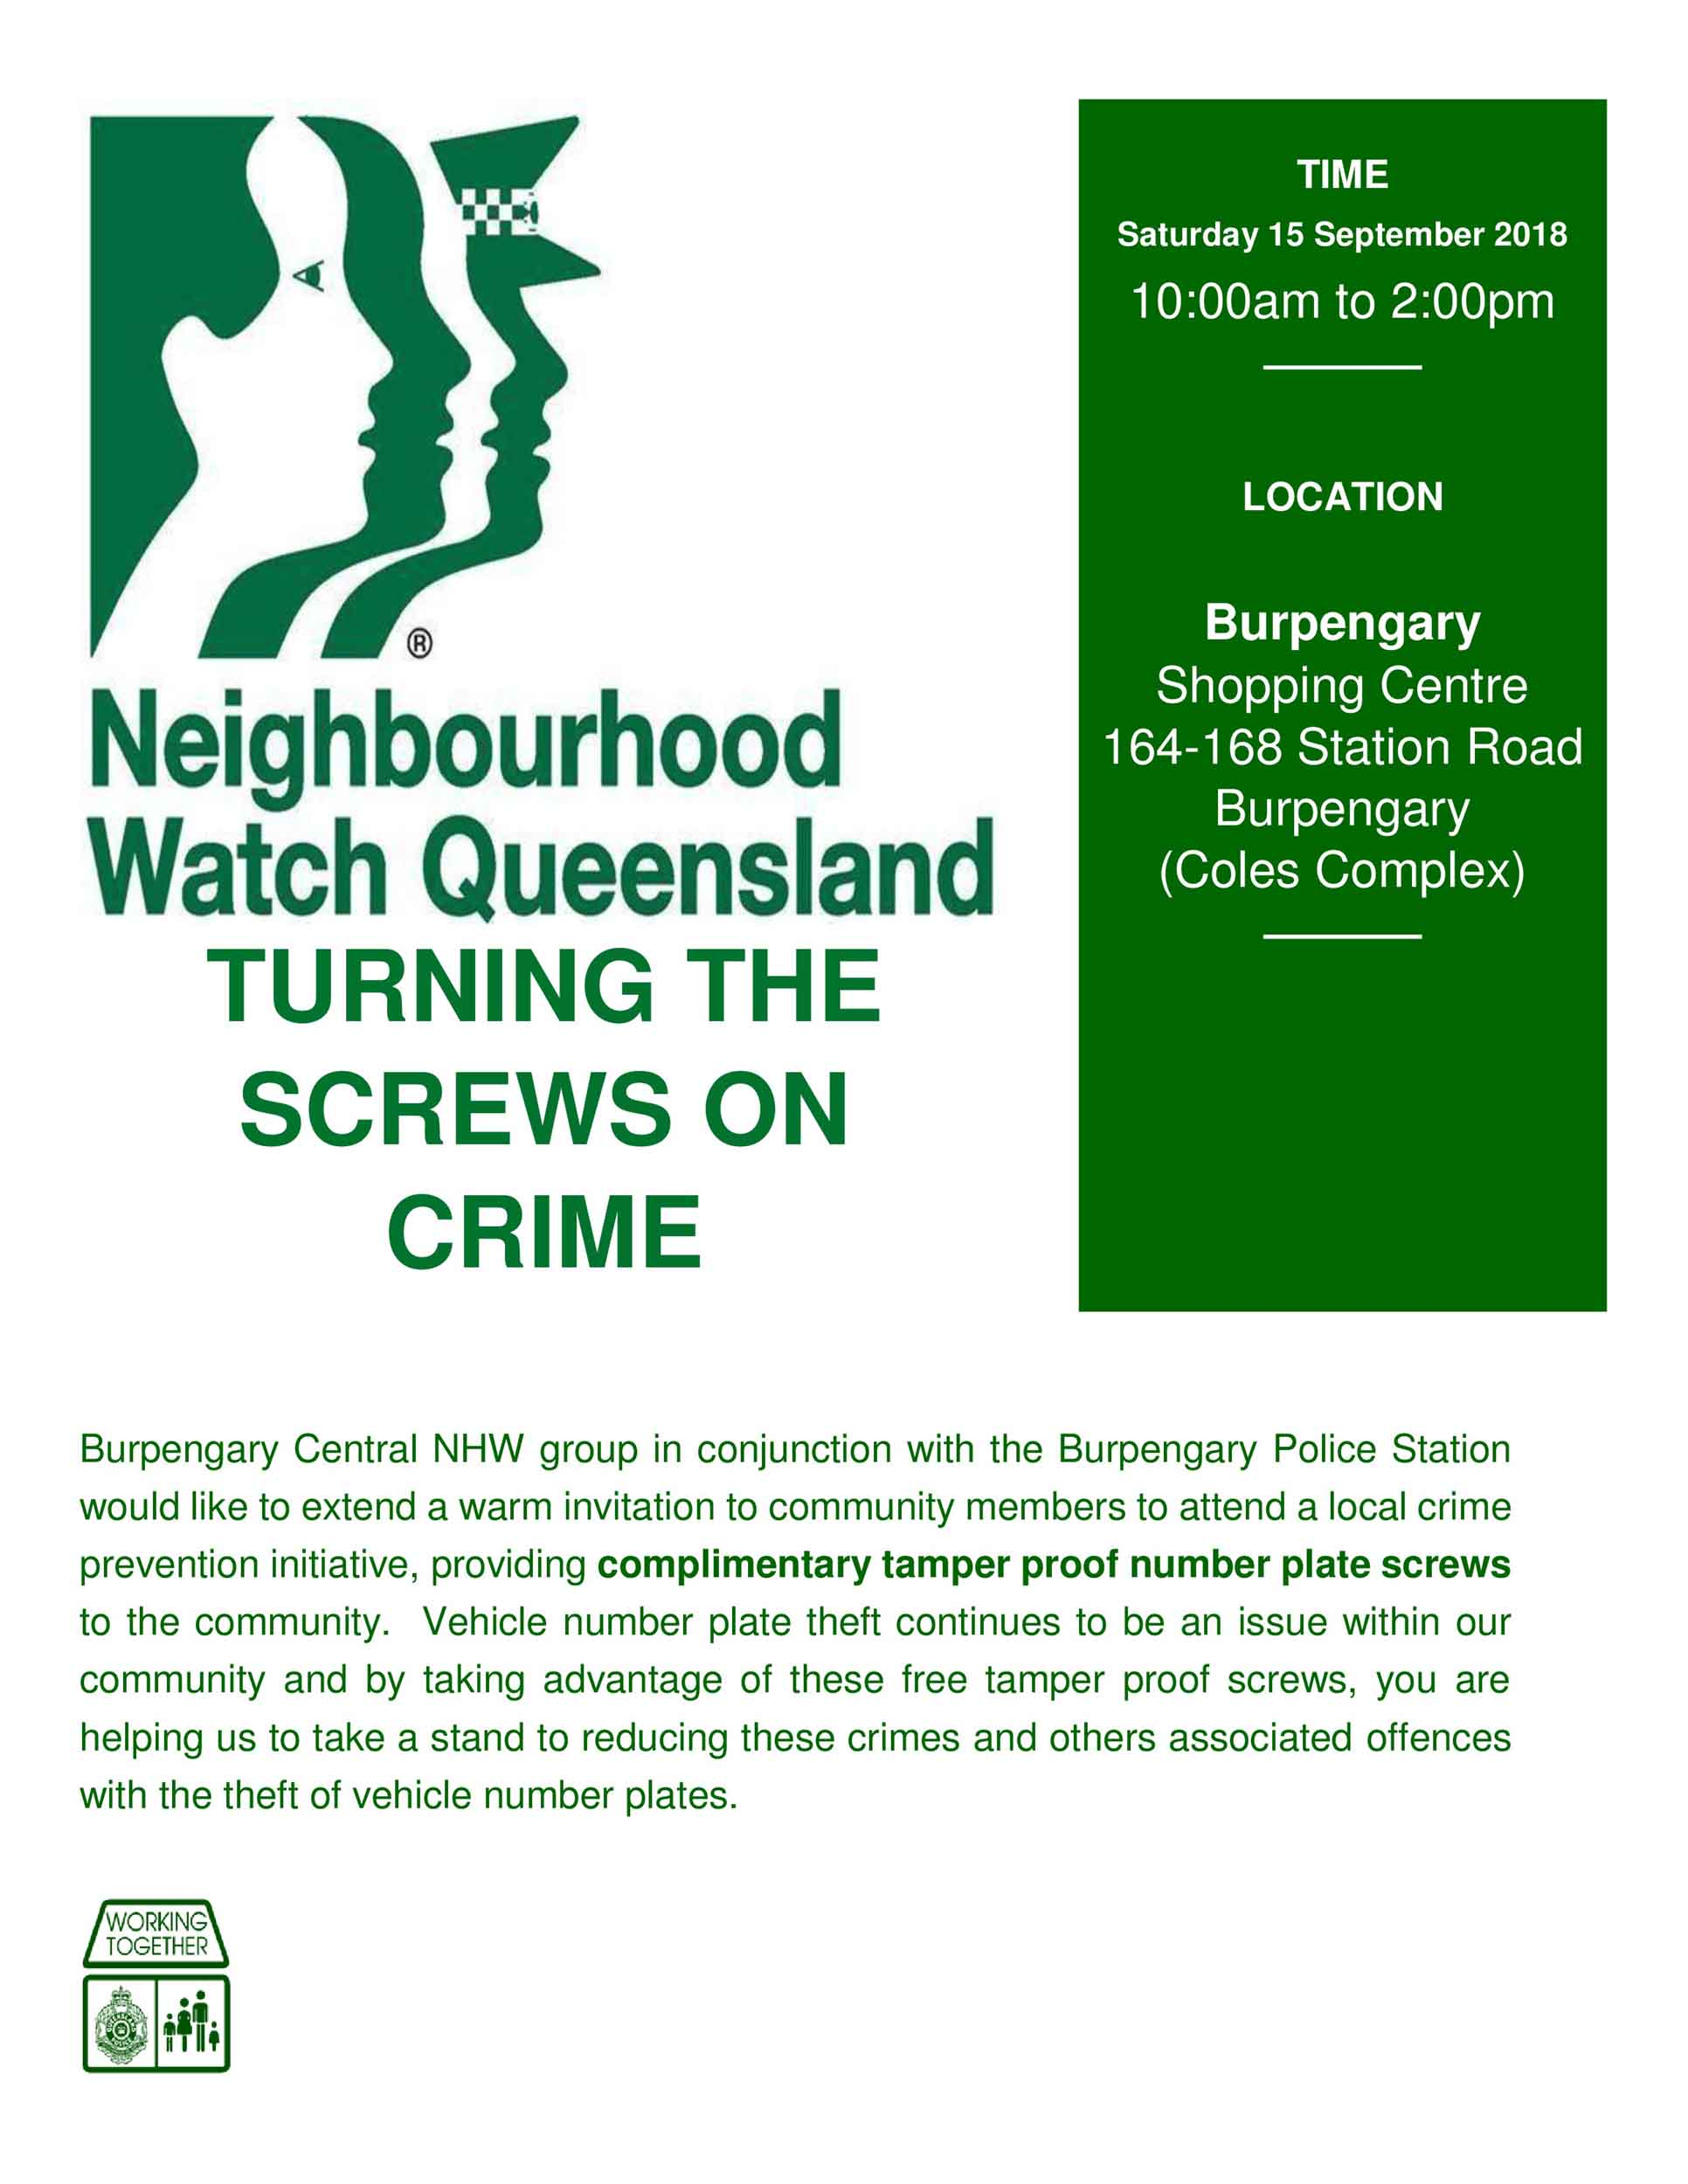 Turning the screws invite Burpengary Central-page-0 small